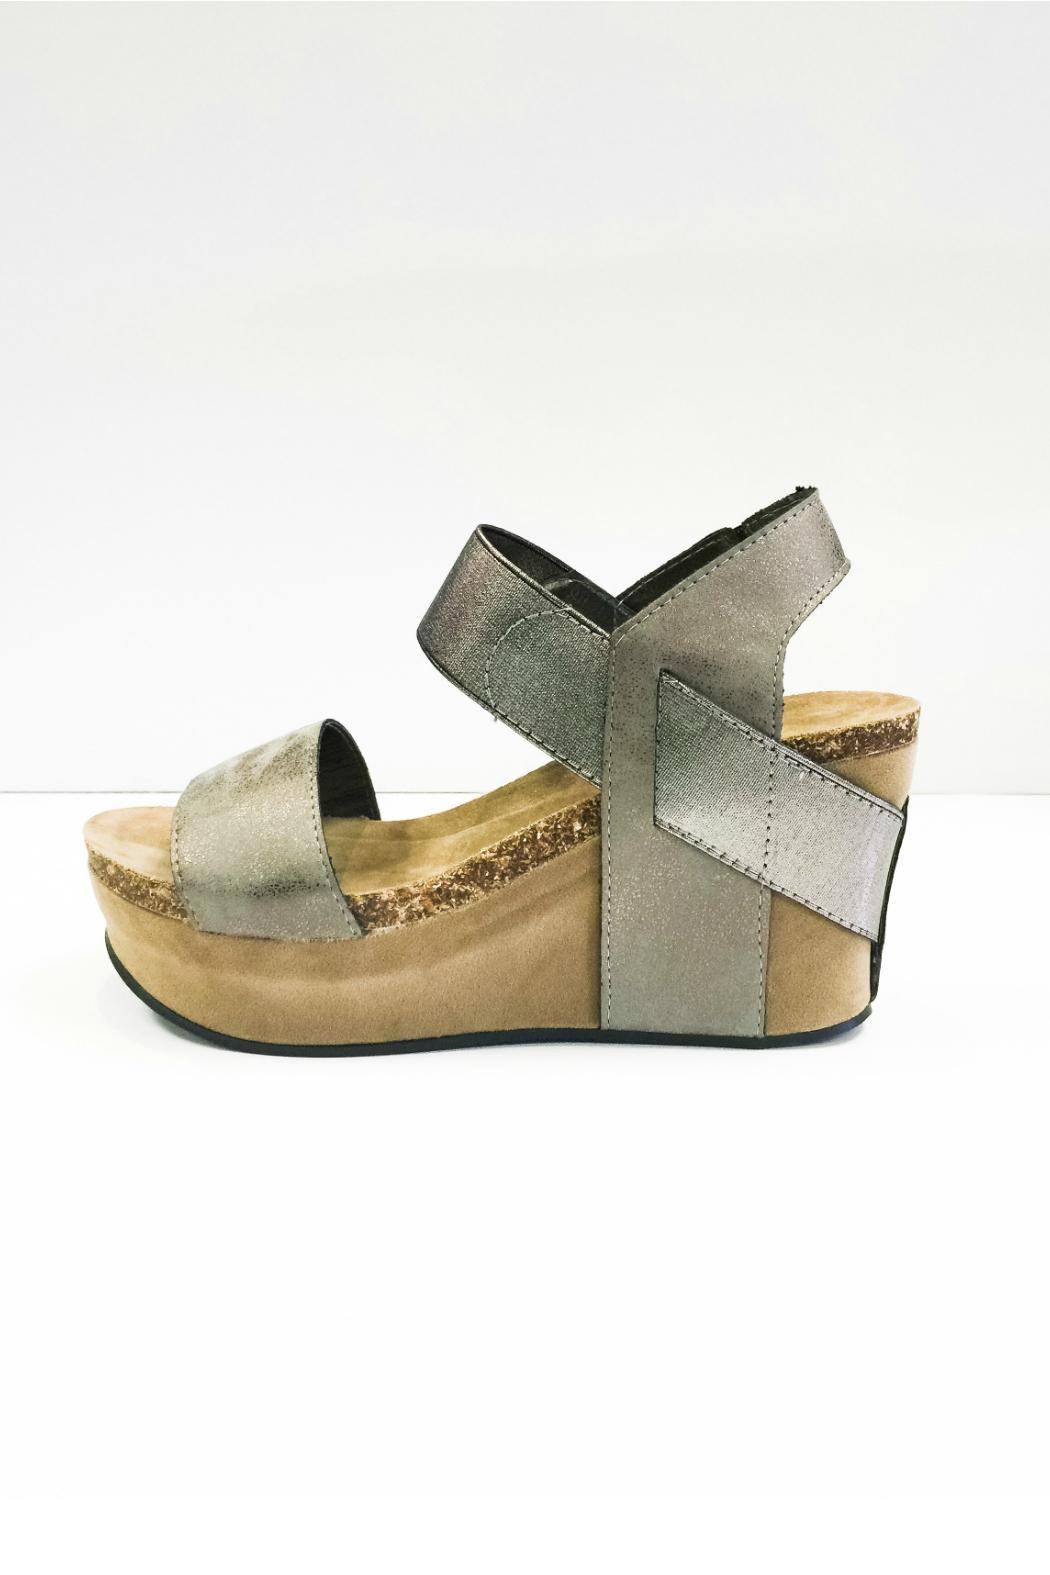 08c81e78b027 Pierre Dumas Pewter Wedges from Alabama by Bohemian Bliss — Shoptiques